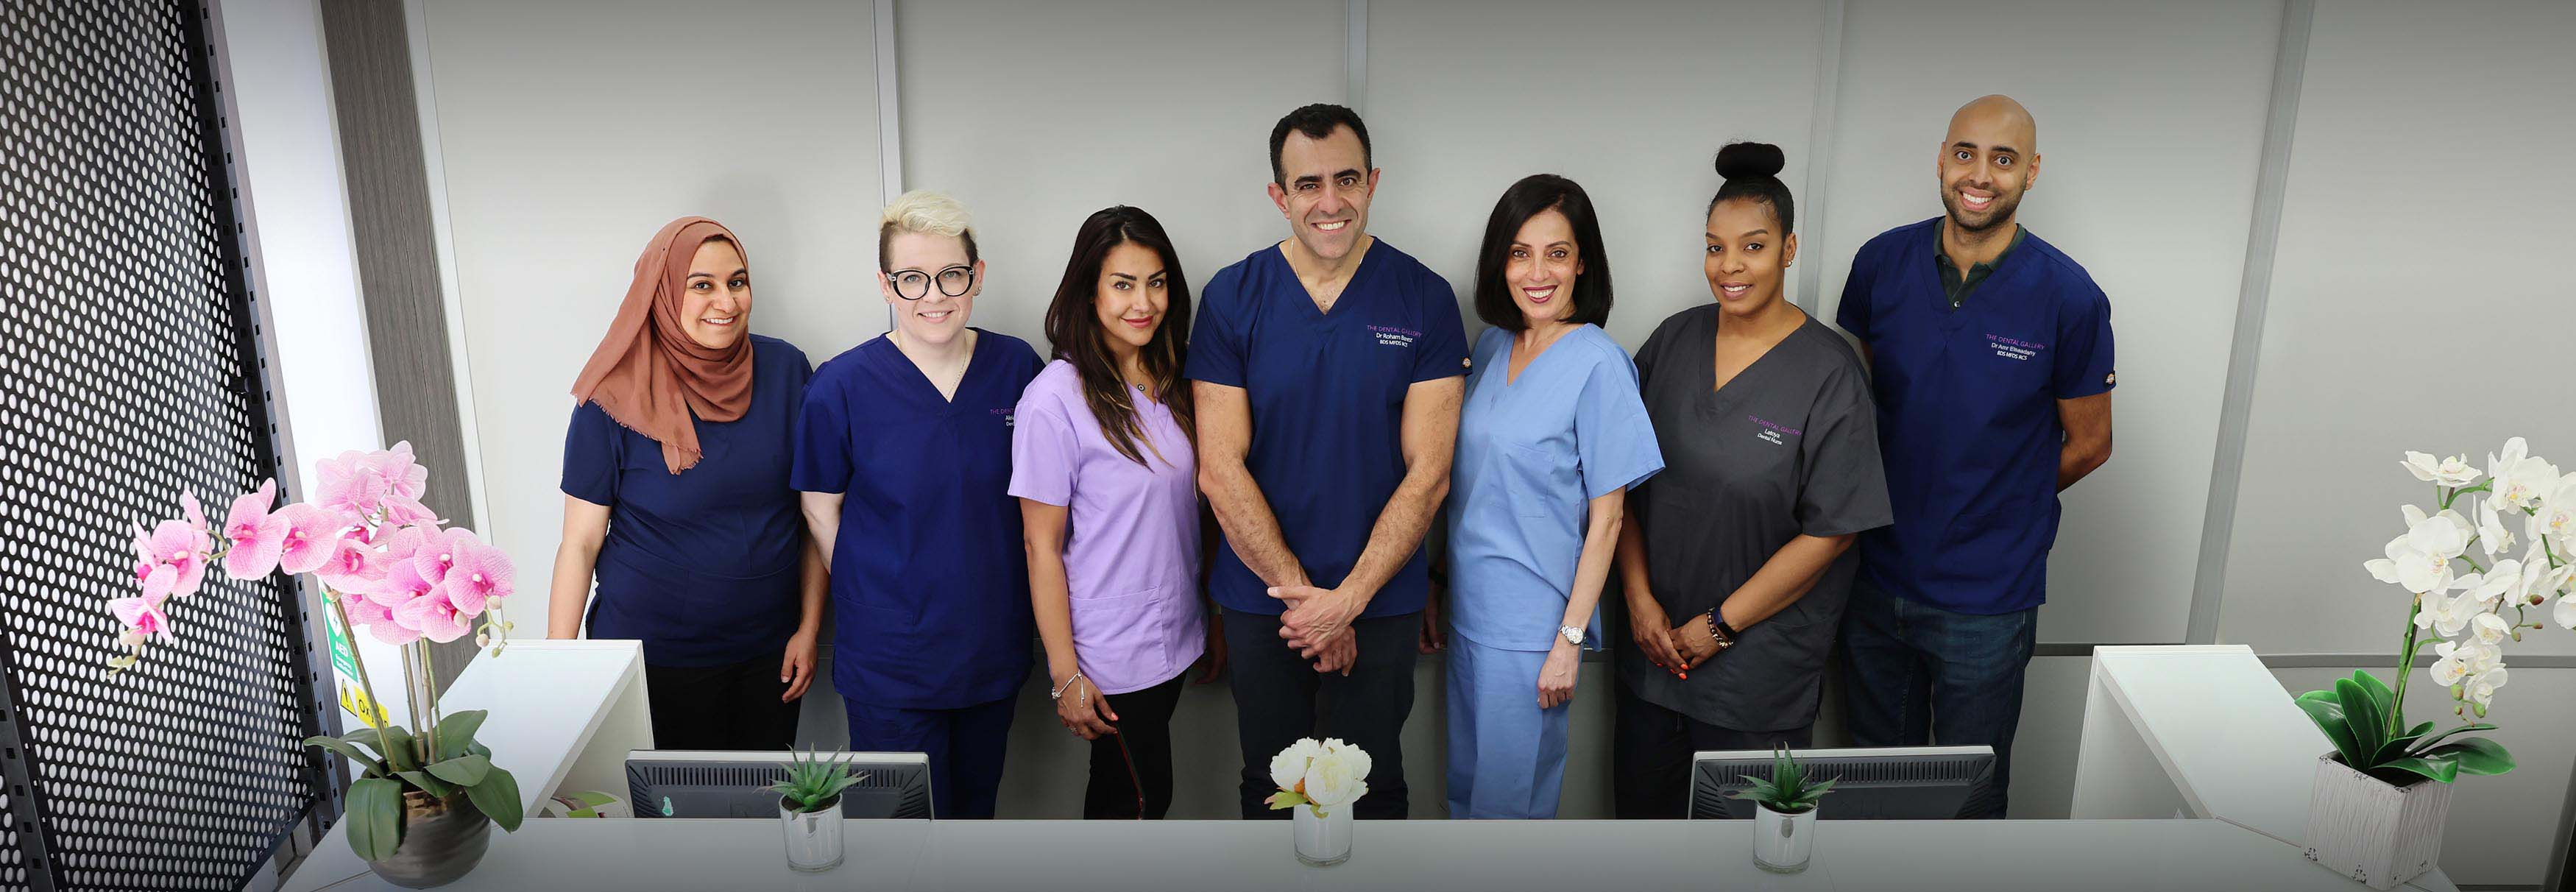 Meet the team at the Dental Gallery Ealing